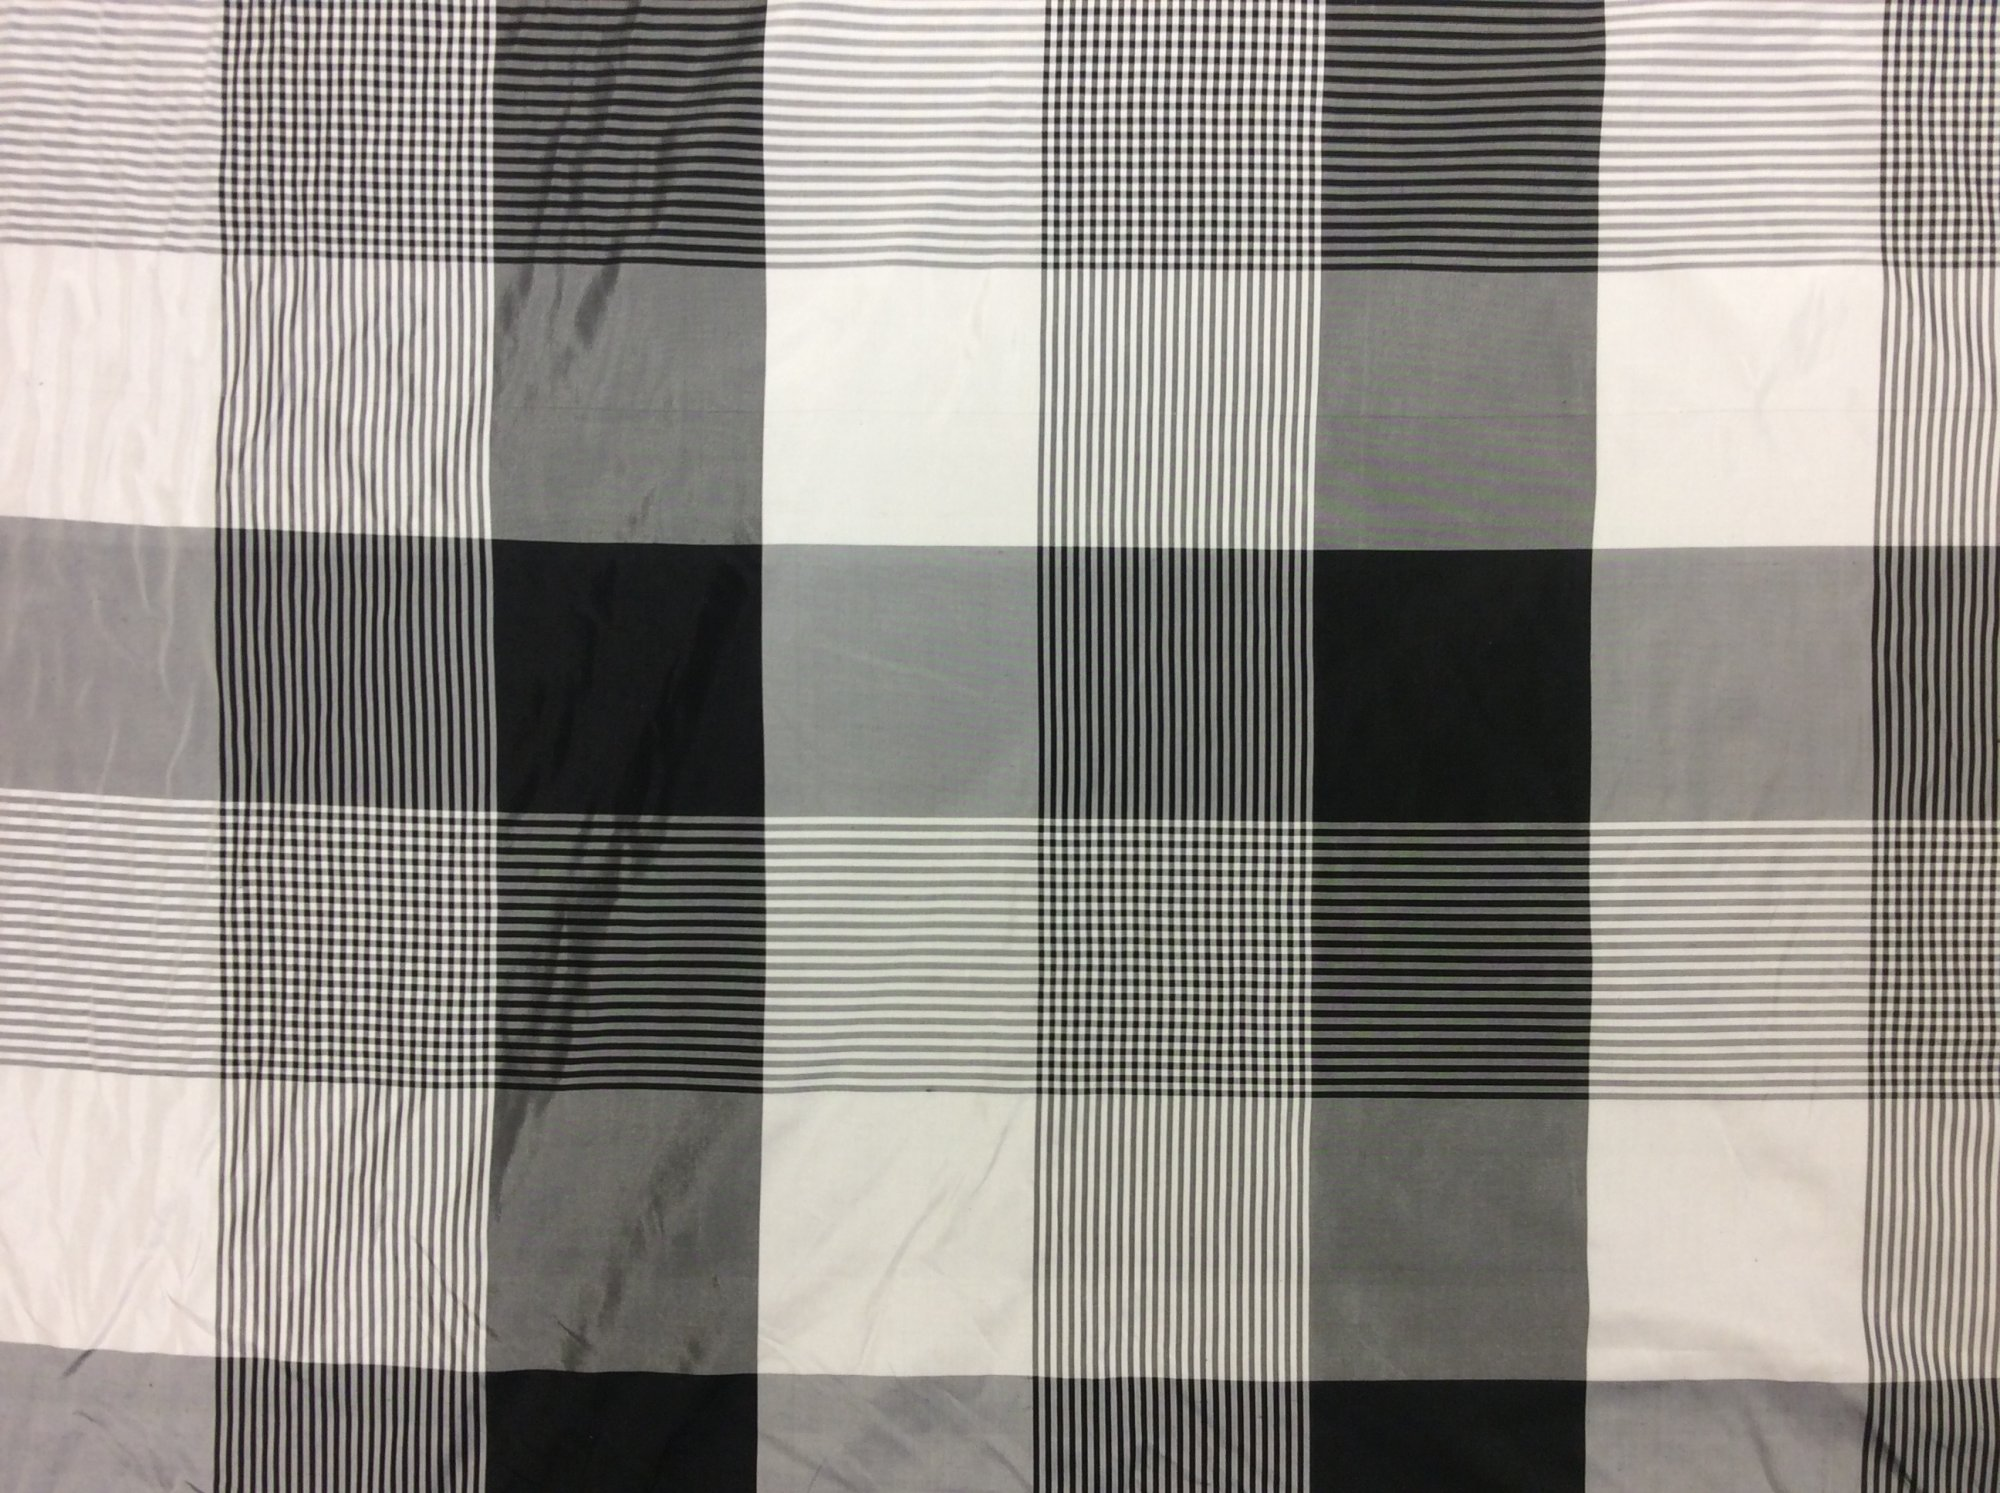 100% Silk Taffeta Black and White Buffalo Check Plaid Apparel Drapery Home Decor Fabric FM108